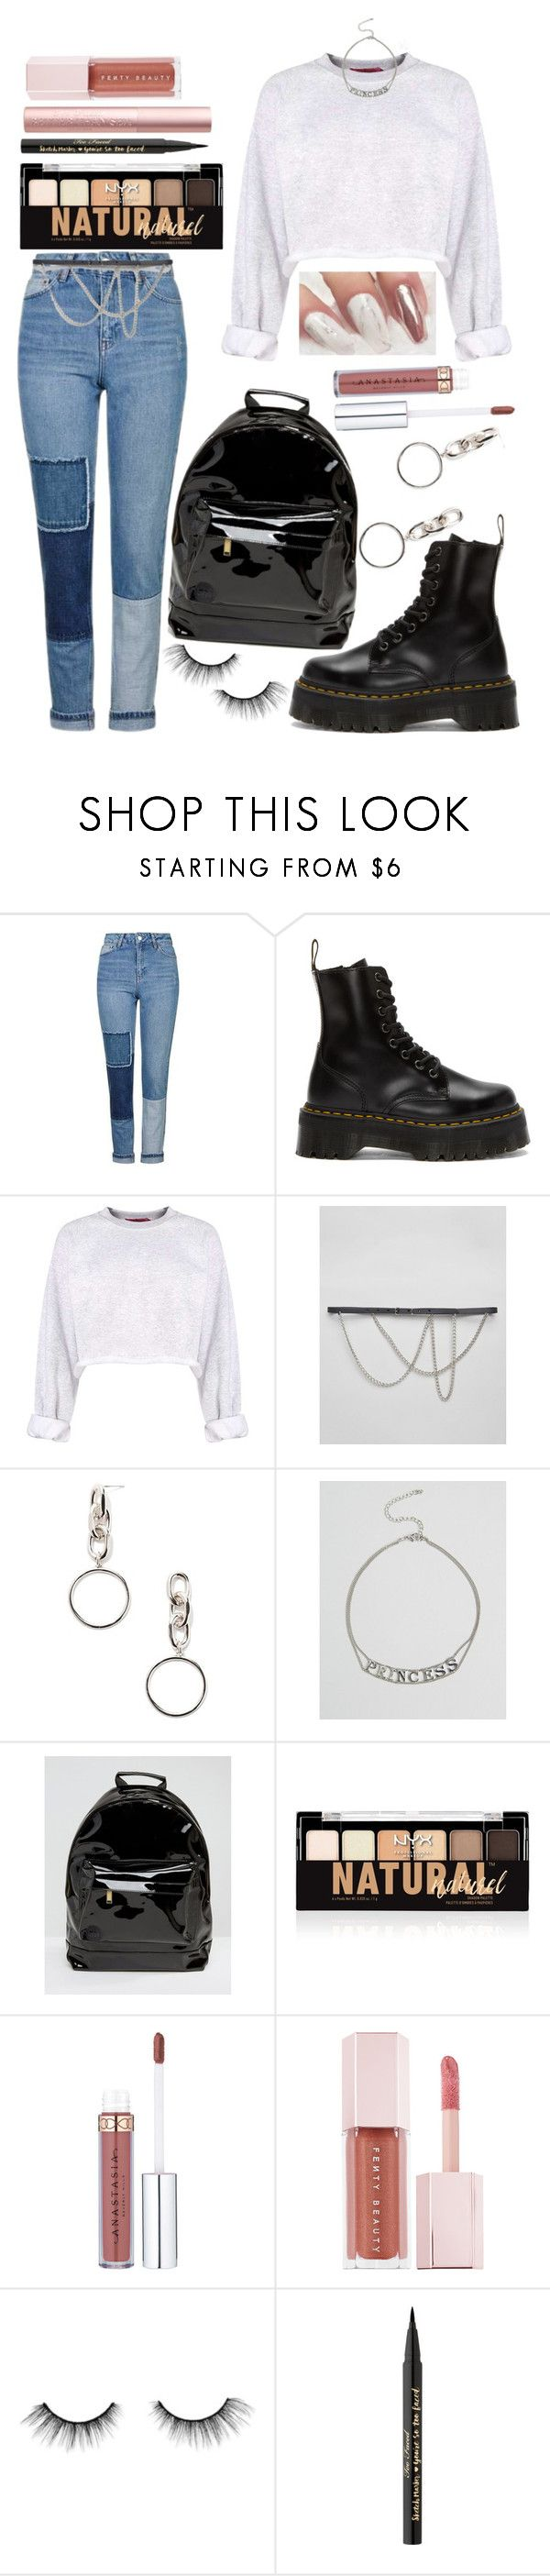 """""""OOTD 12.29.17"""" by angelsaffairs ❤ liked on Polyvore featuring Topshop, Dr. Martens, Reclaimed Vintage, Forever 21, ASOS, Mi-Pac, NYX, Puma, tarte and Too Faced Cosmetics"""